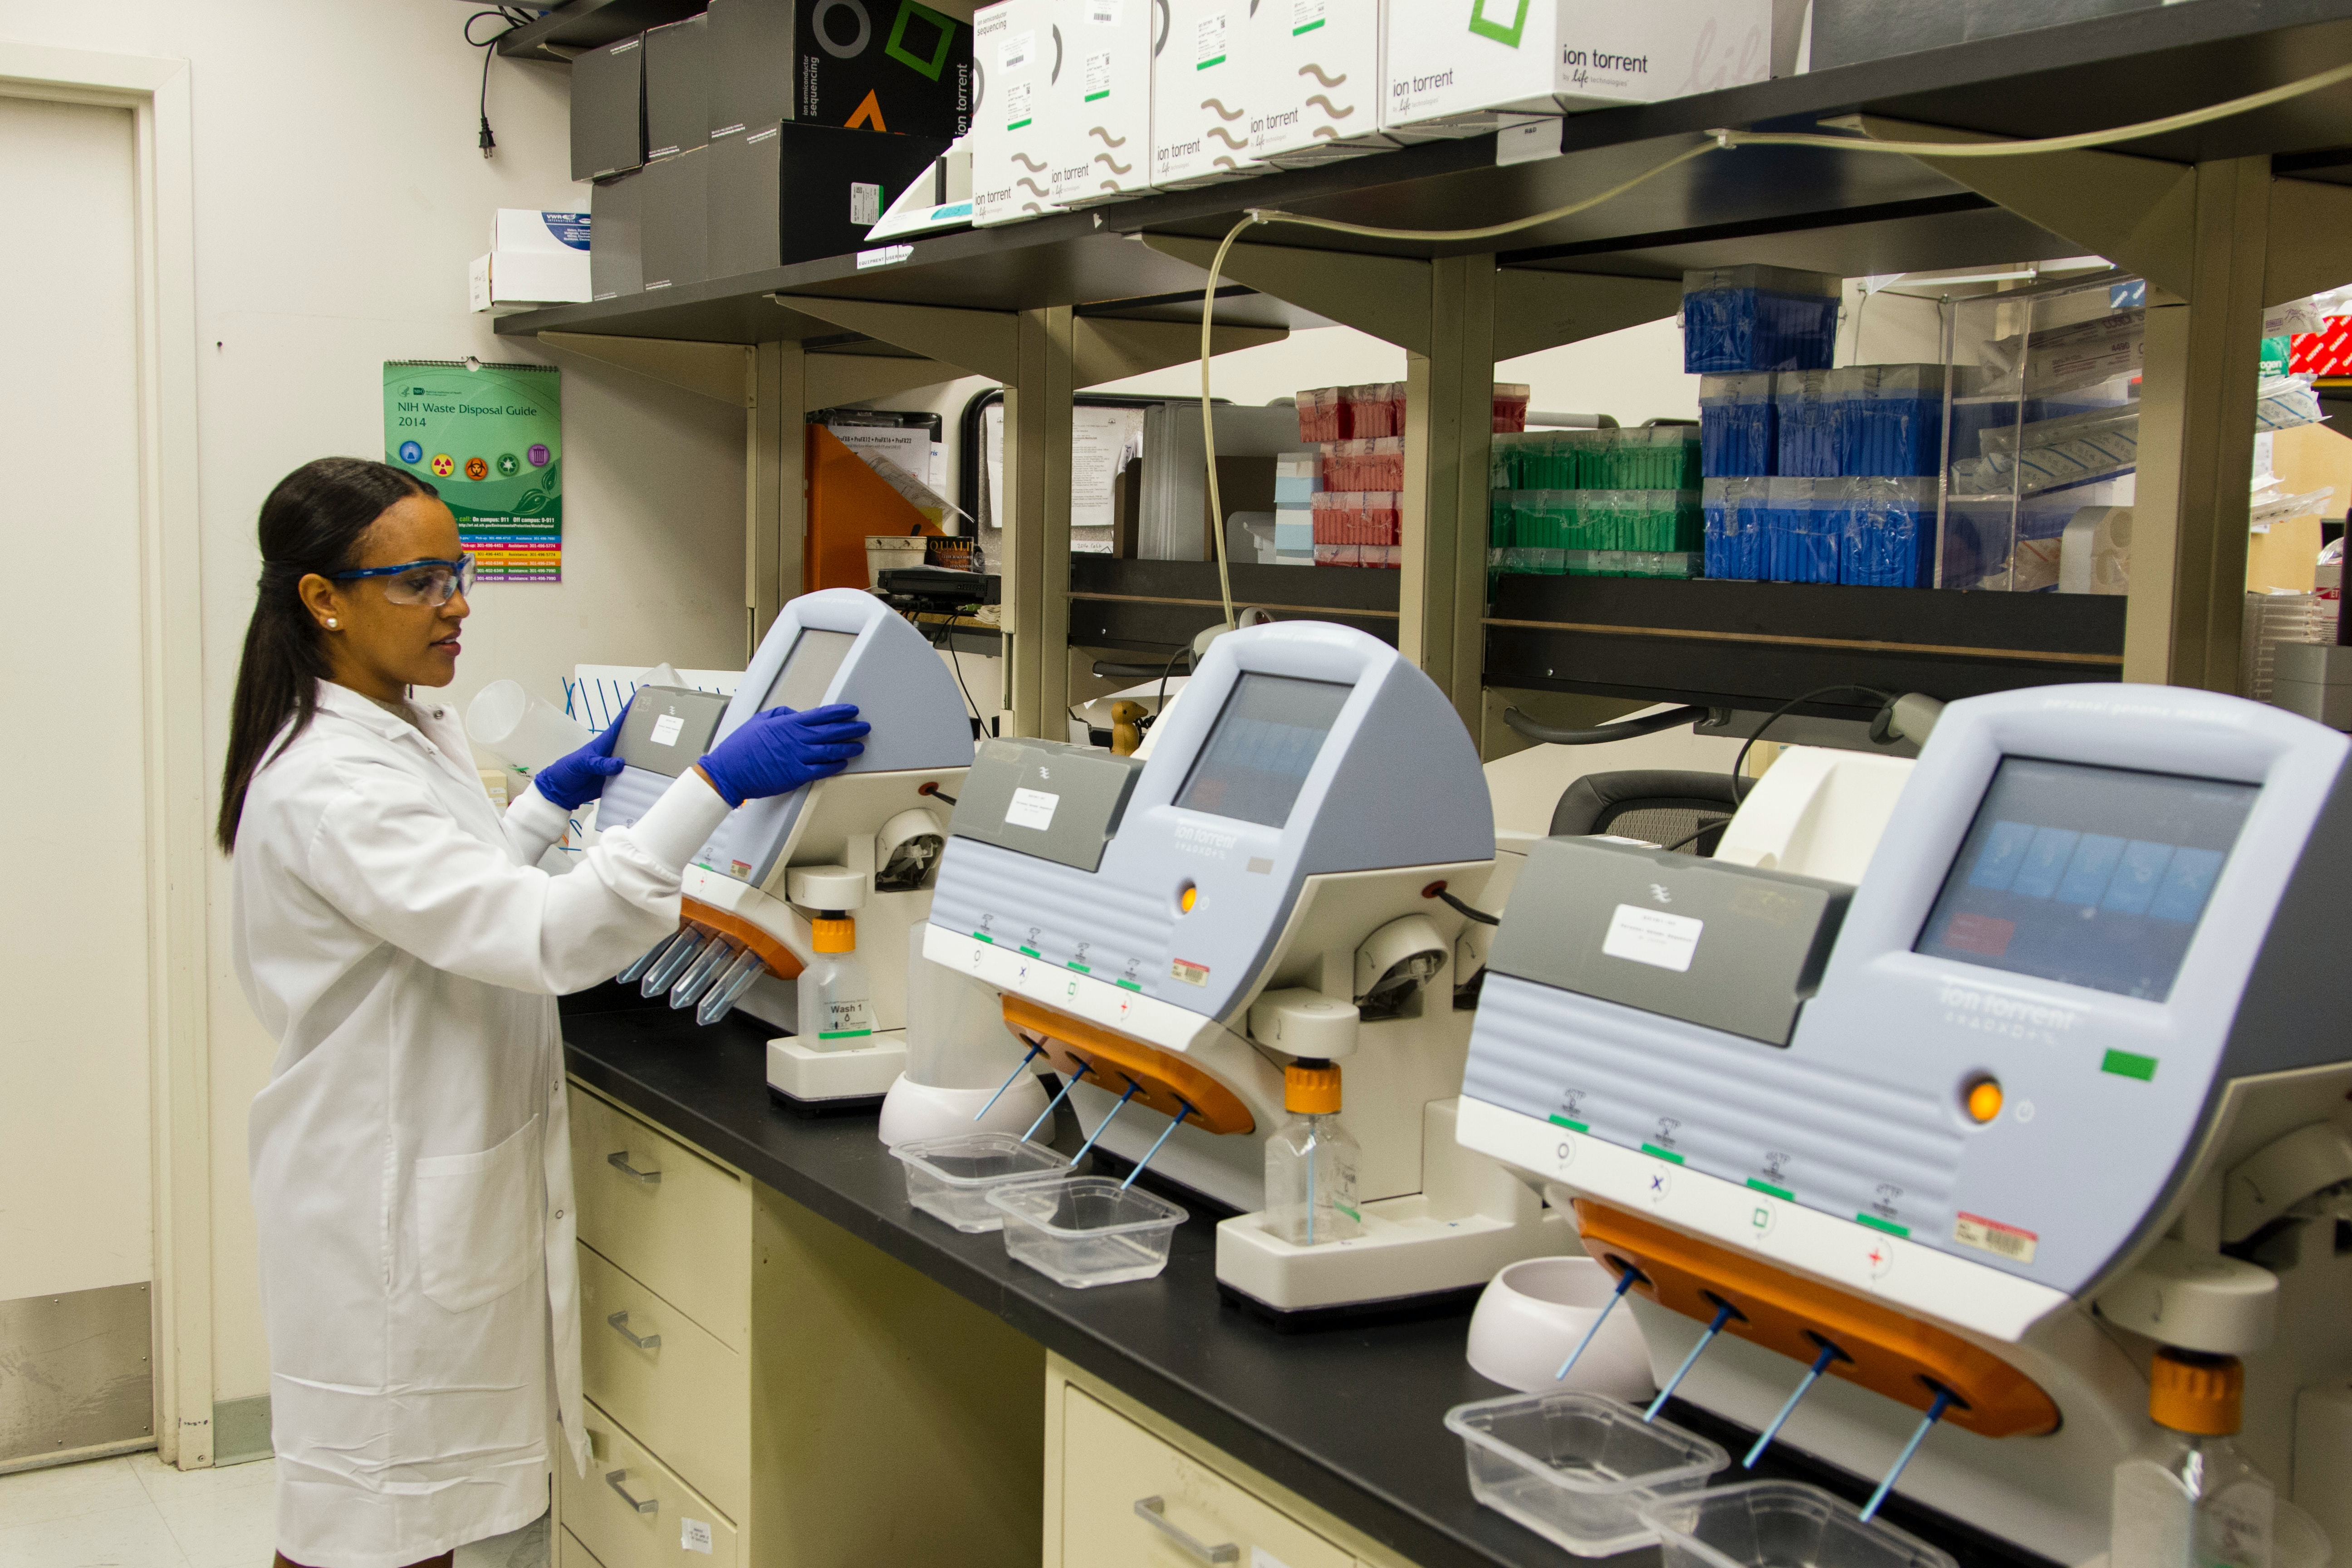 A technician validates genetic variants identified through whole-exome sequencing at the Cancer Genomics Research Laboratory, part of the National Cancer Institute's Division of Cancer Epidemiology and Genetics (DCEG).